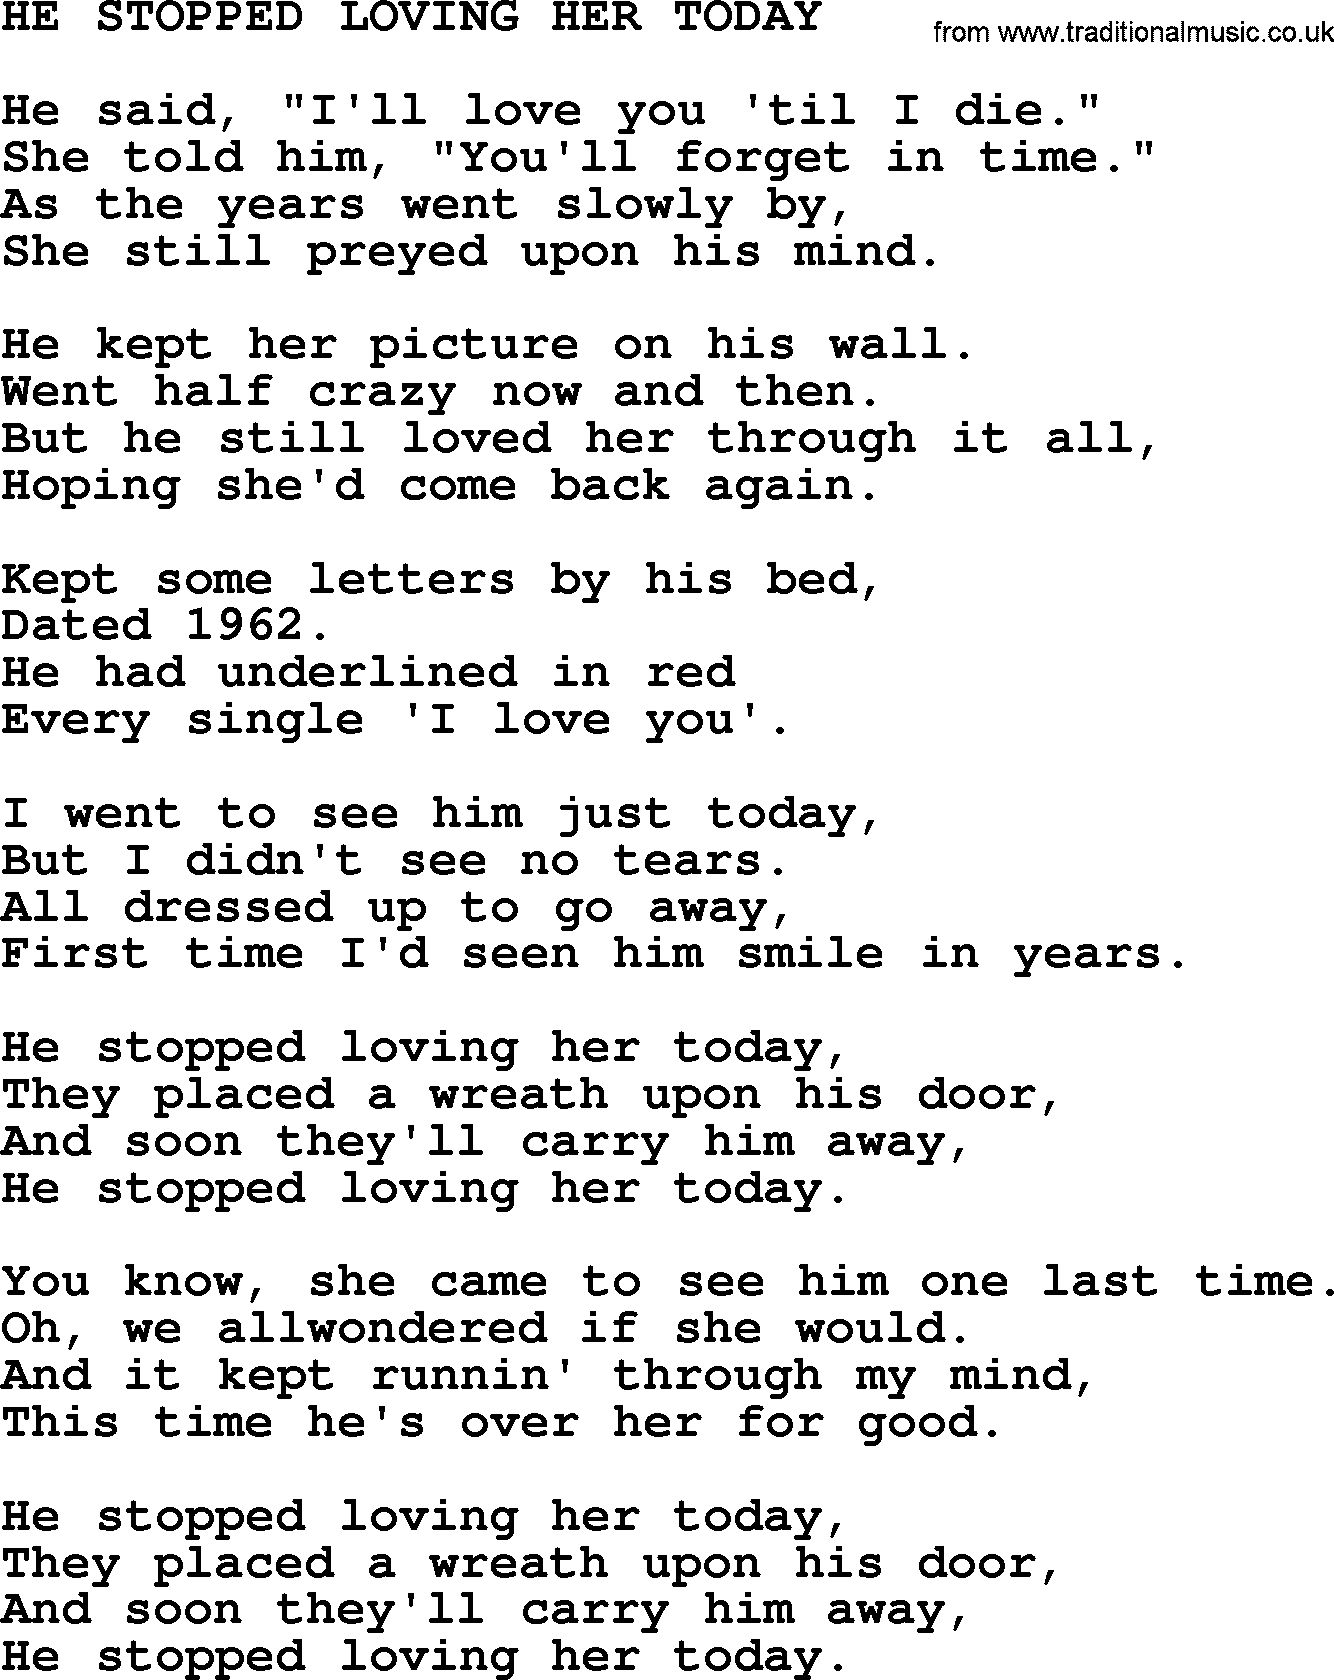 Johnny Cash Song He Stopped Loving Her Today Lyrics